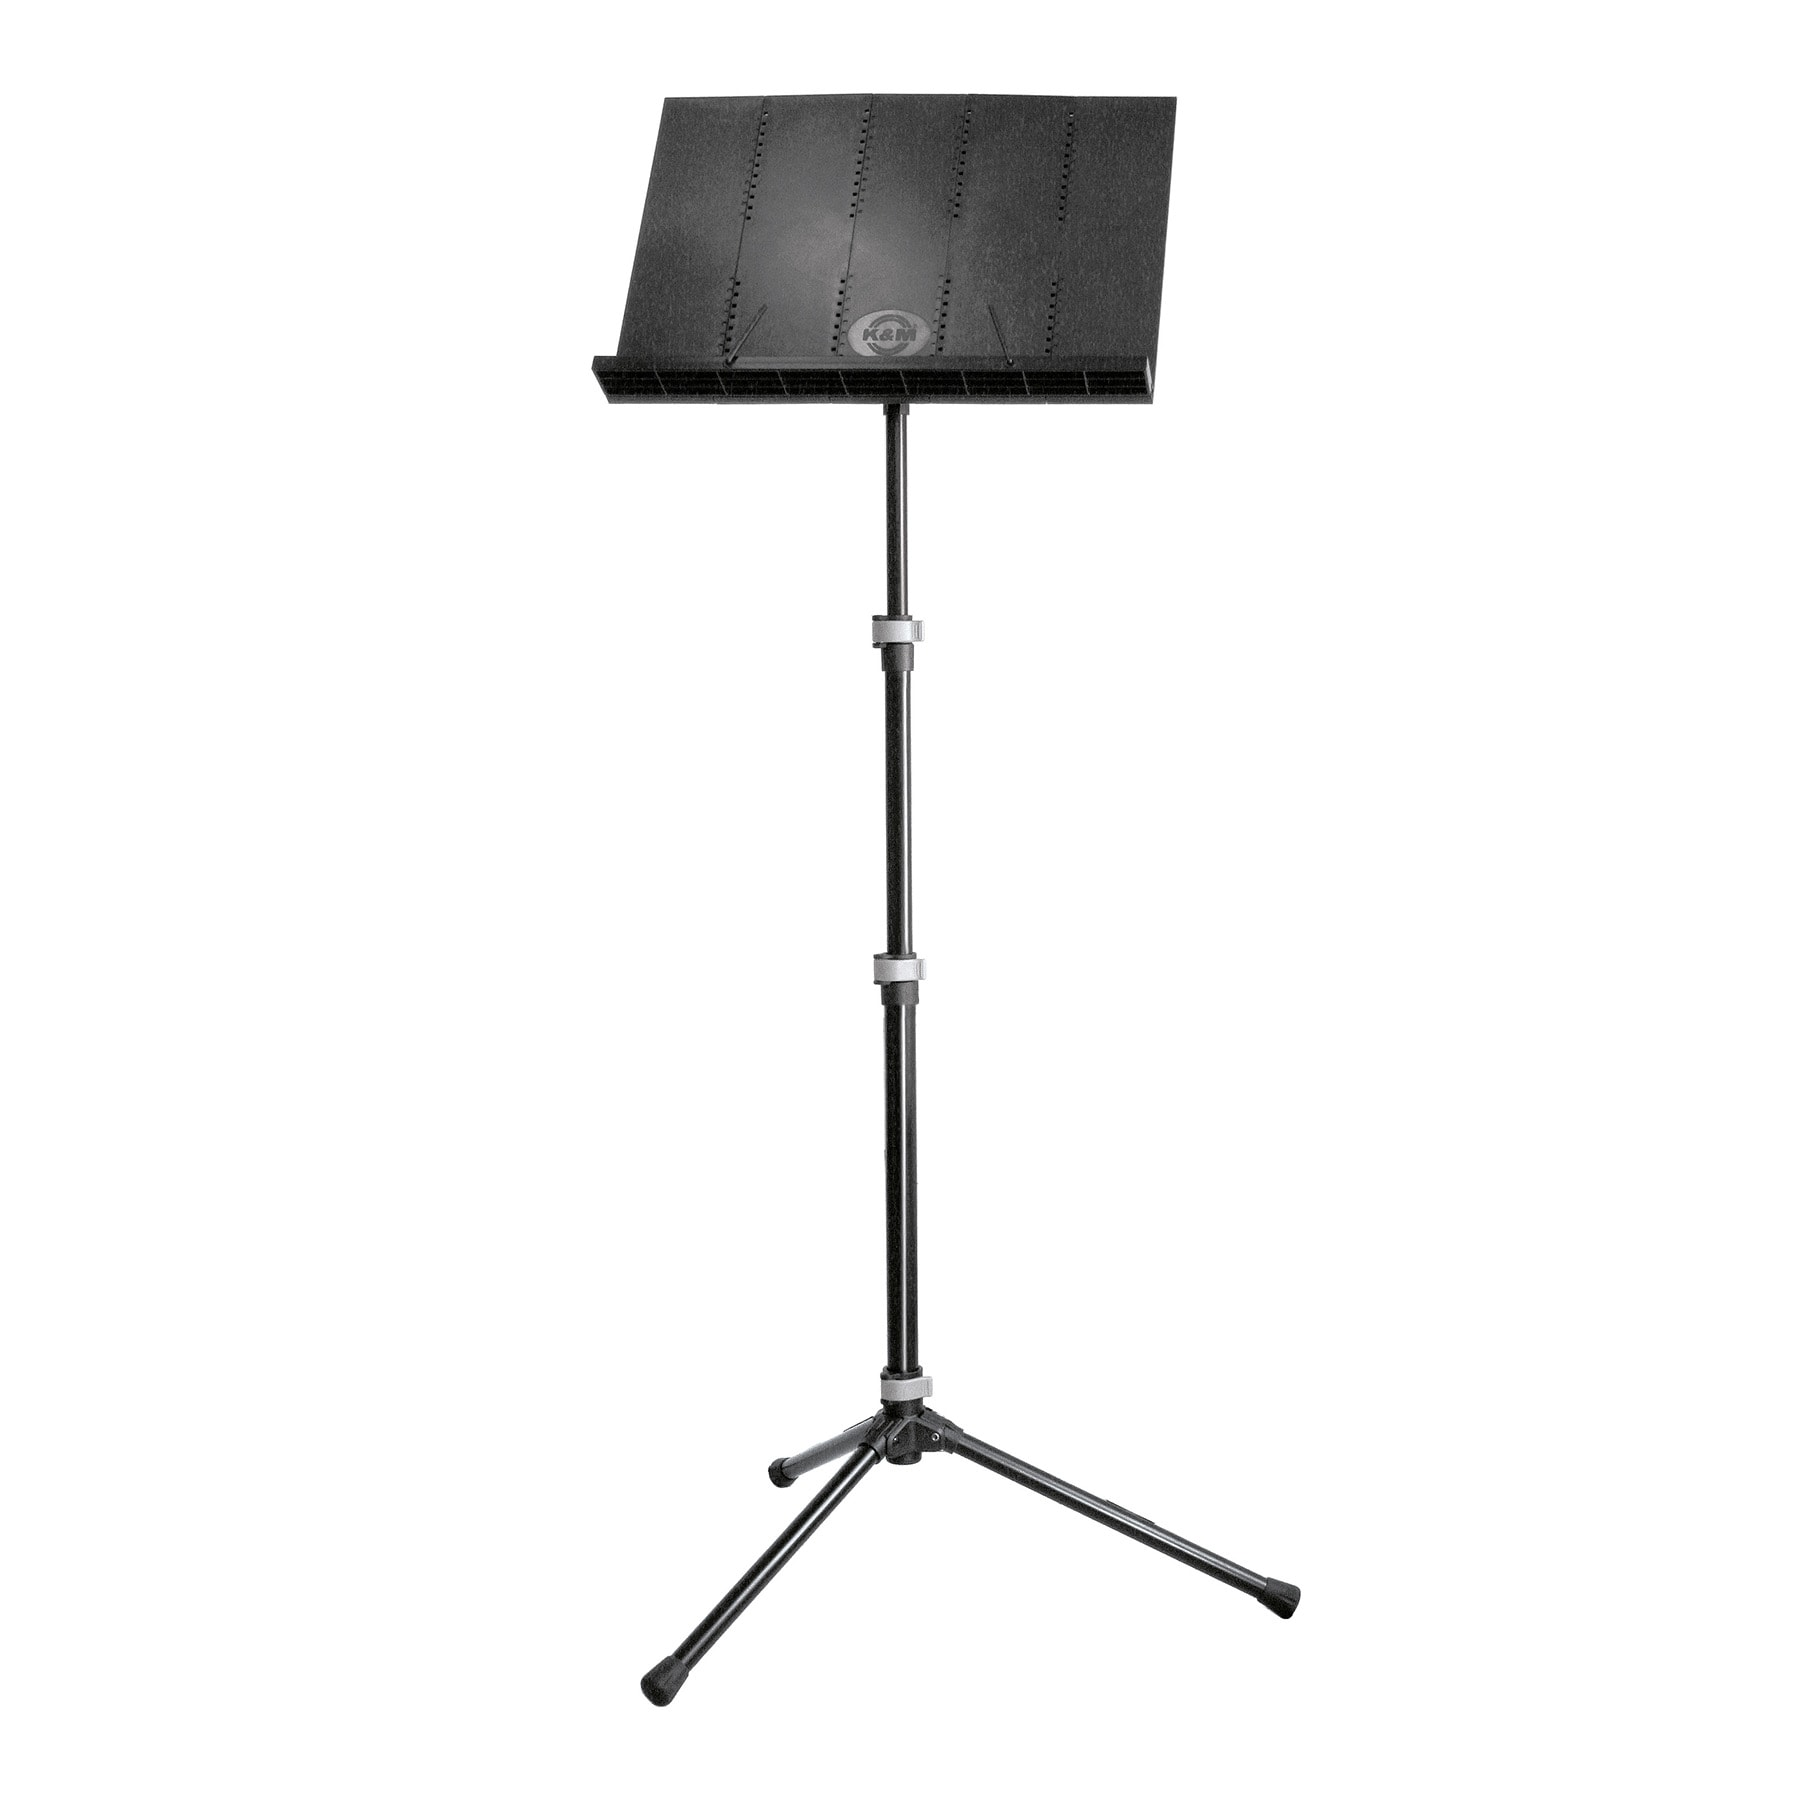 KM12125 - Orchestra music stand